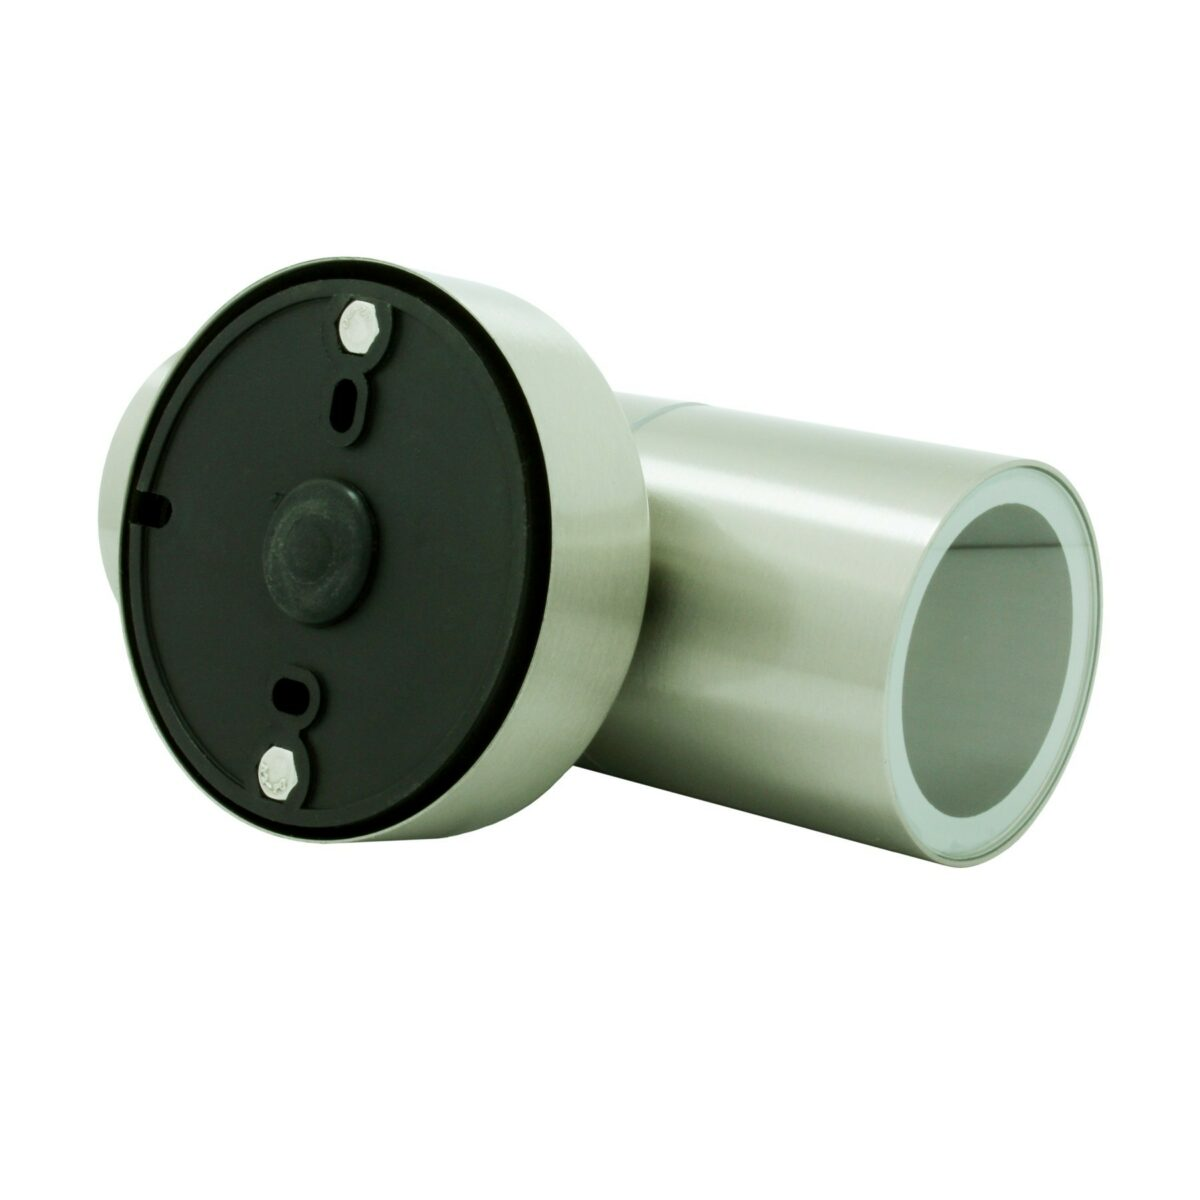 Stainless Steel Wall Up and Down Light GU10 IP44